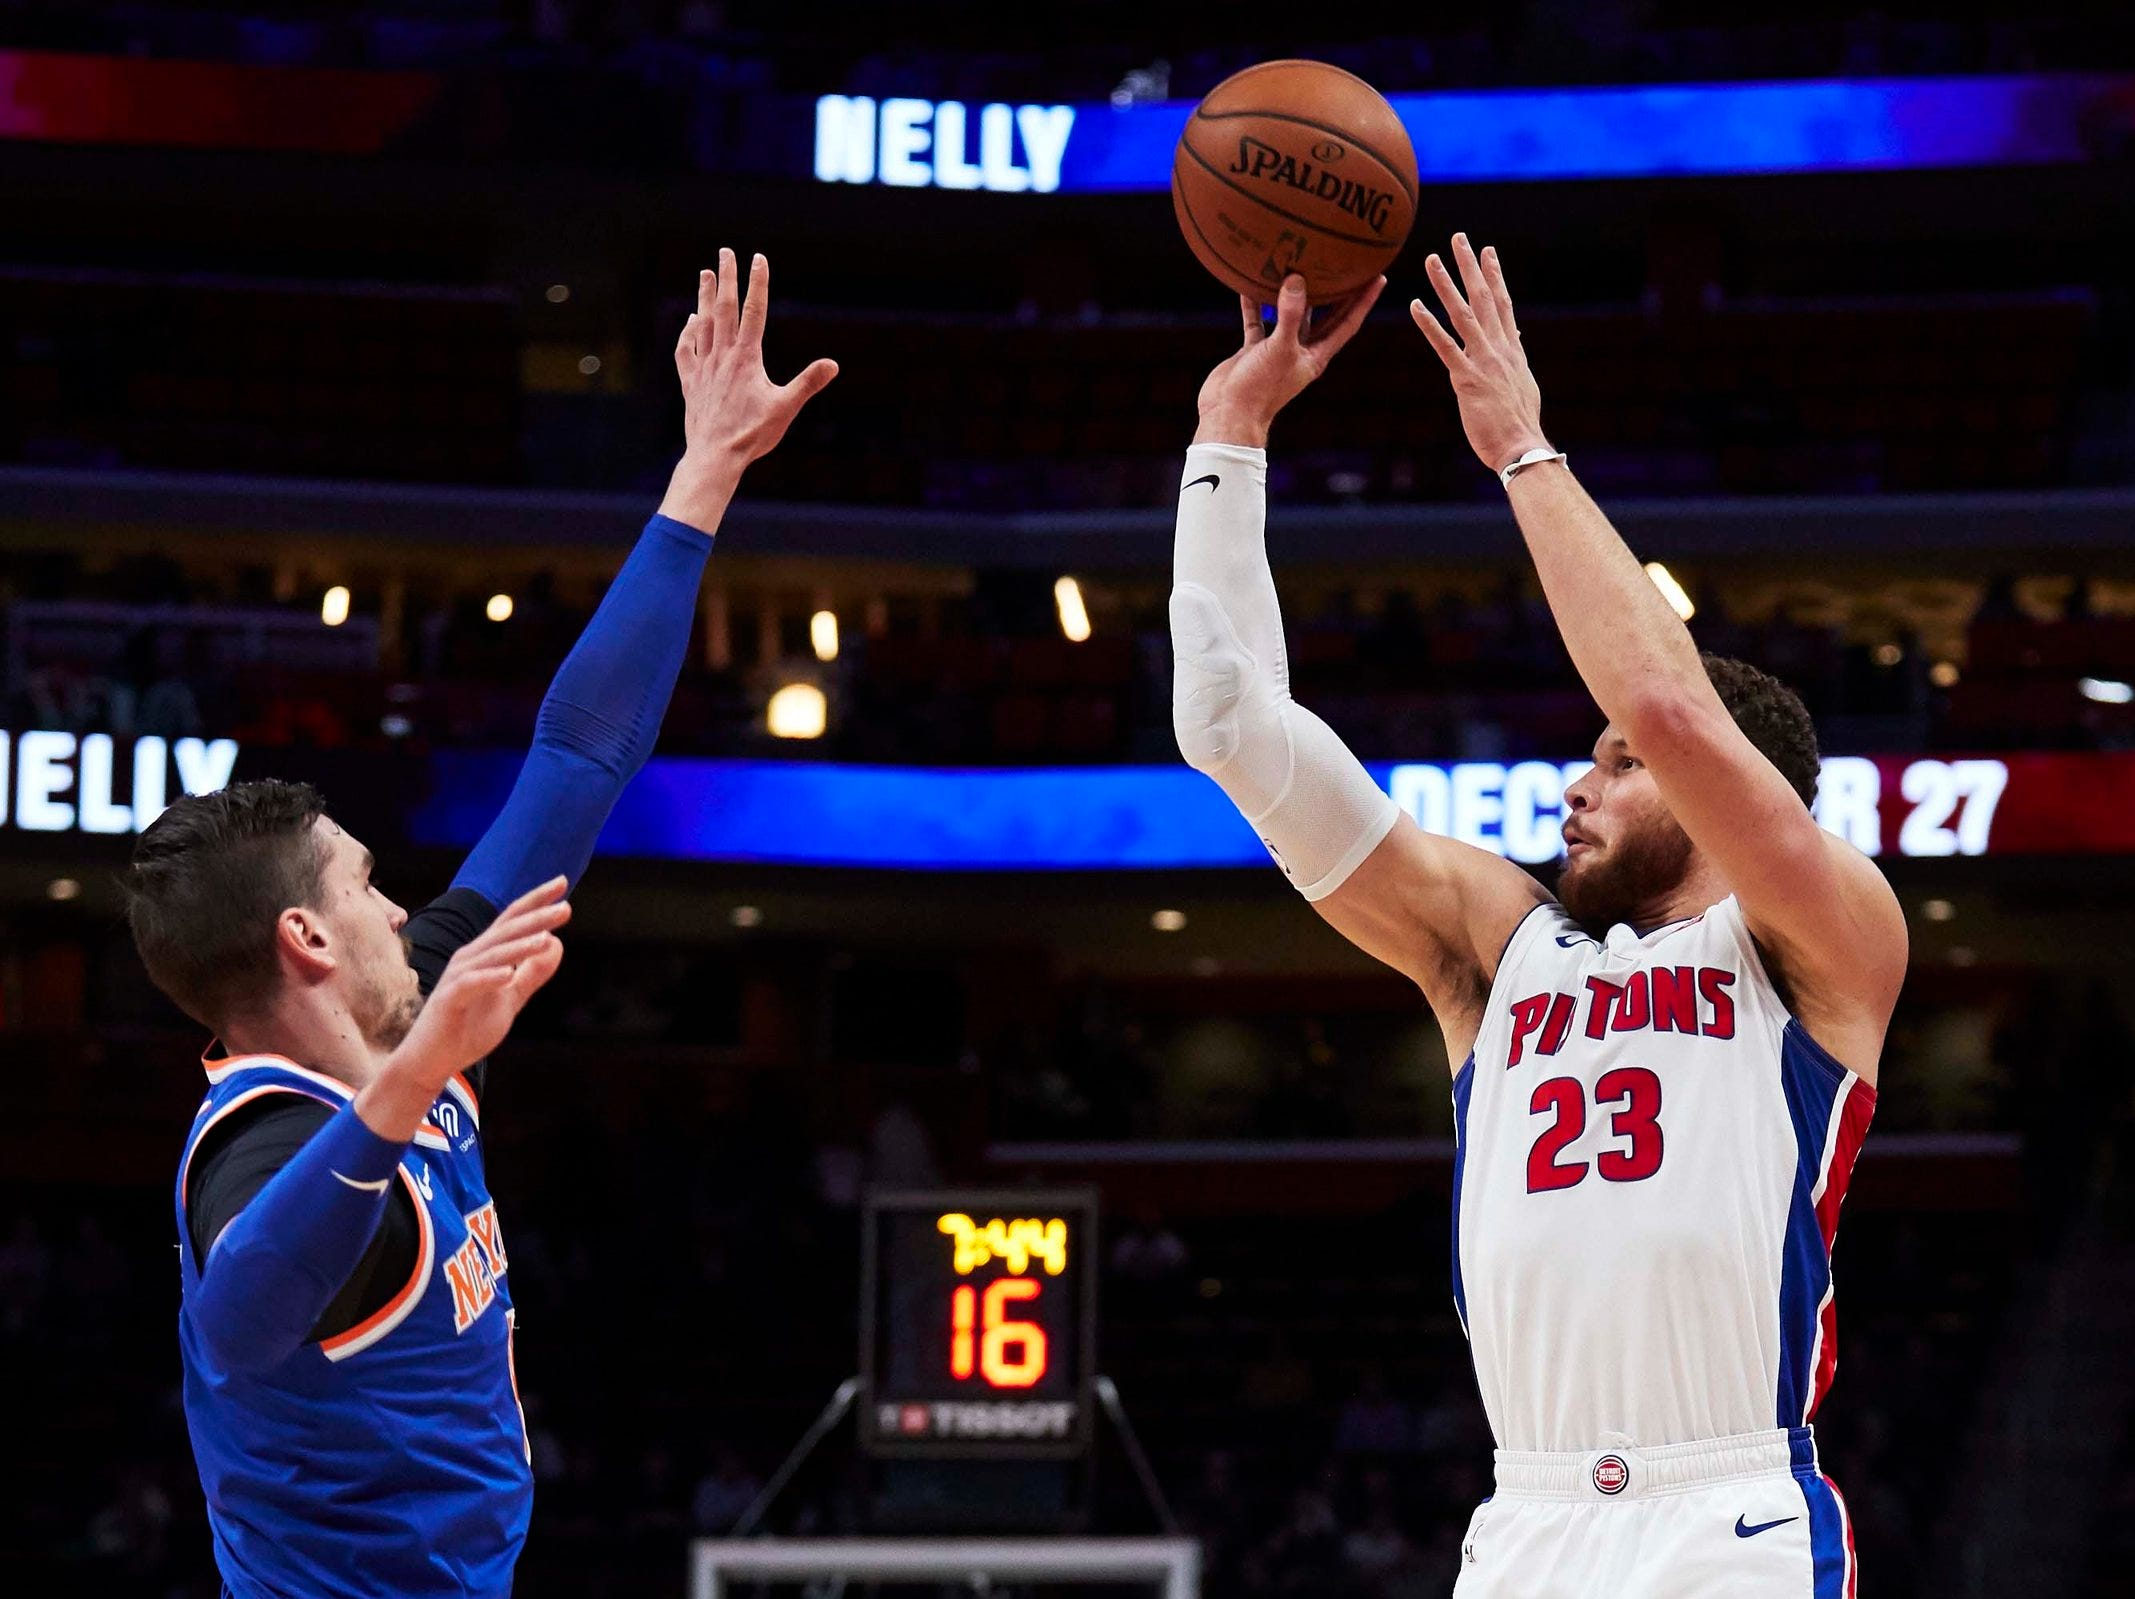 Detroit Pistons forward Blake Griffin (23) shoots on New York Knicks forward Mario Hezonja (8) in the first half at Little Caesars Arena.